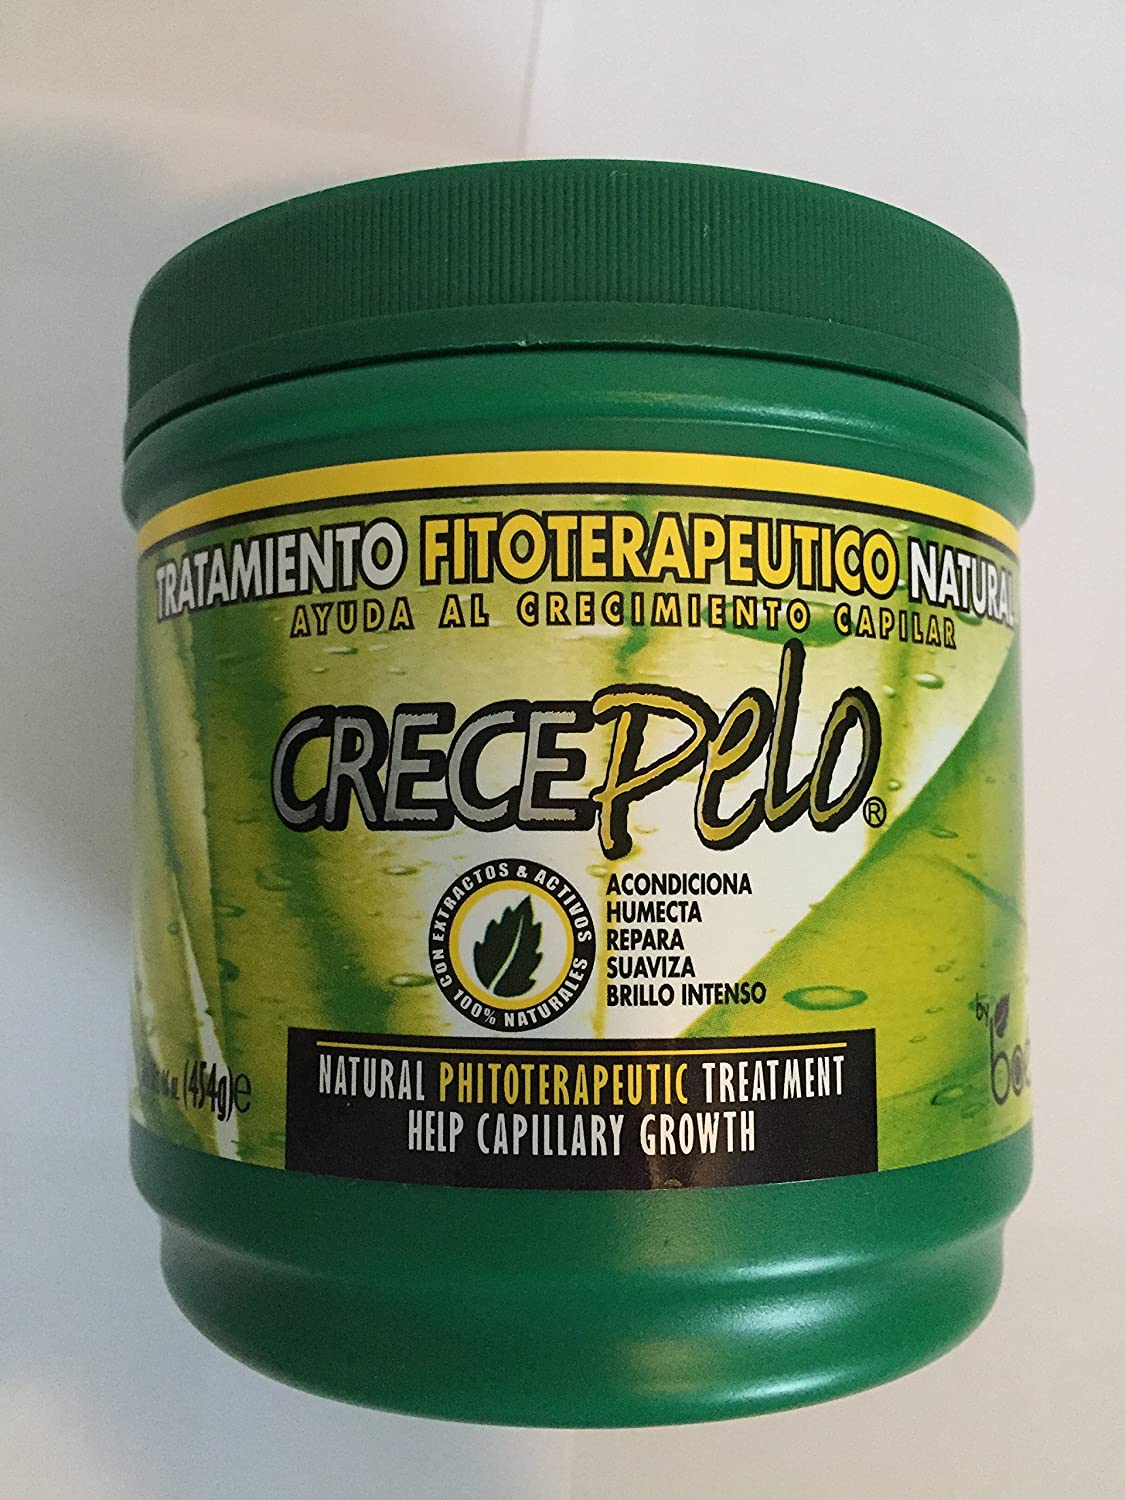 Amazon.com : Crecepelo Natural Phitoterapeutic Treatment/ Crecepelo Tratamiento Fitoterapeutico Natural 8 Oz : Beauty